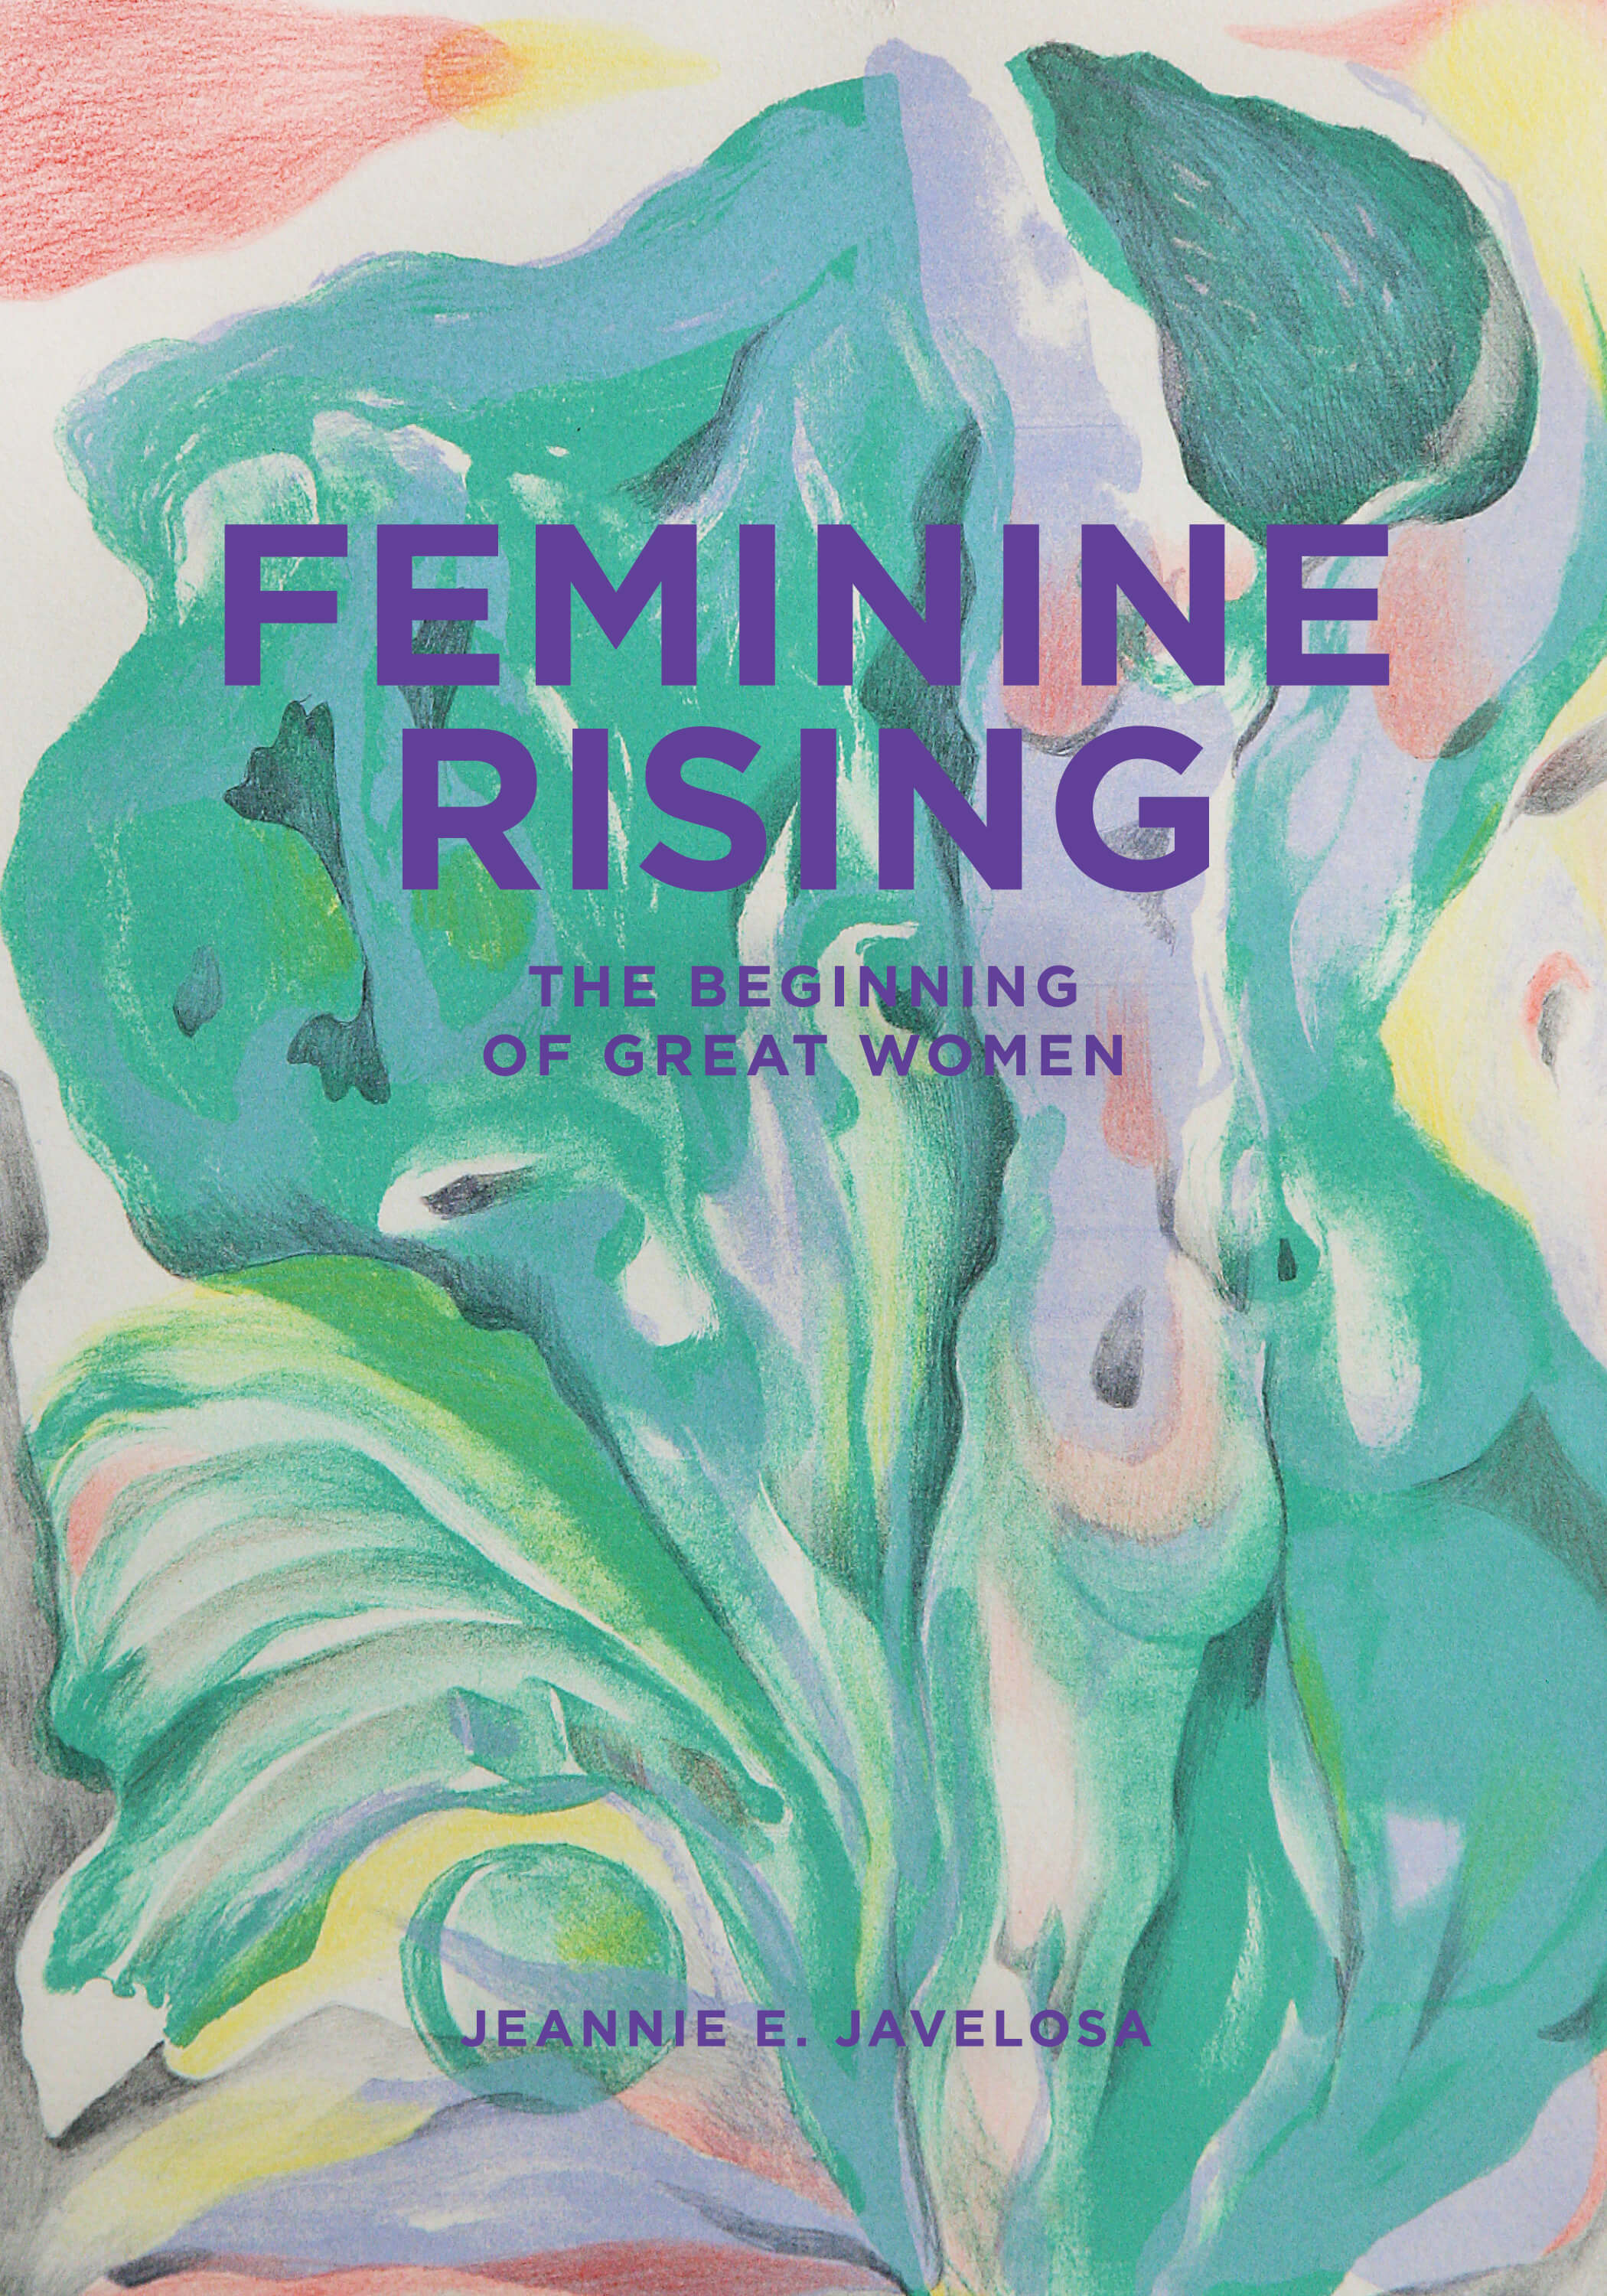 Great women feminine rising final first edition cover 2